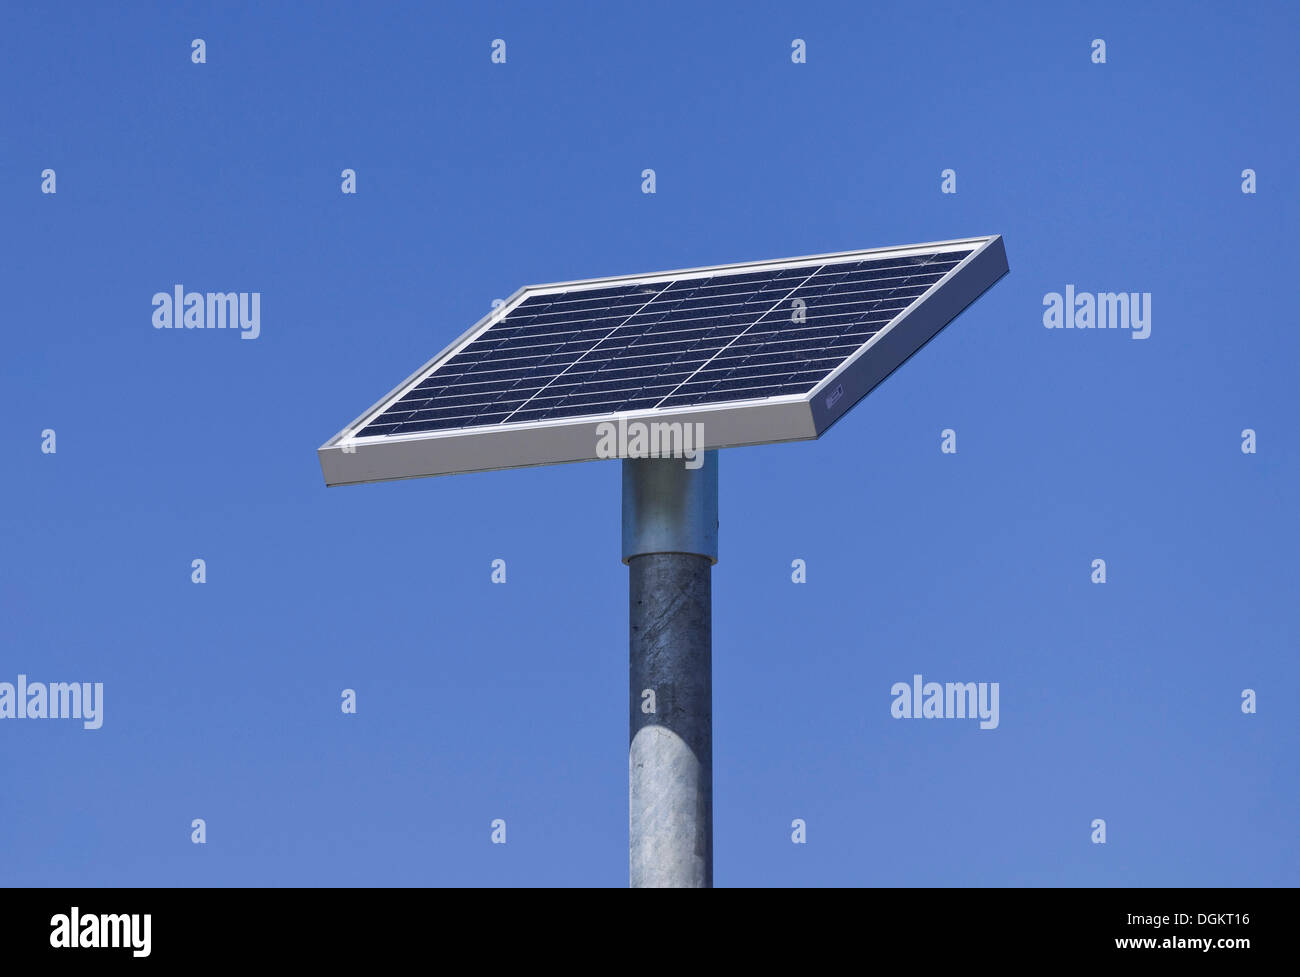 Solar cells on a pole - Stock Image